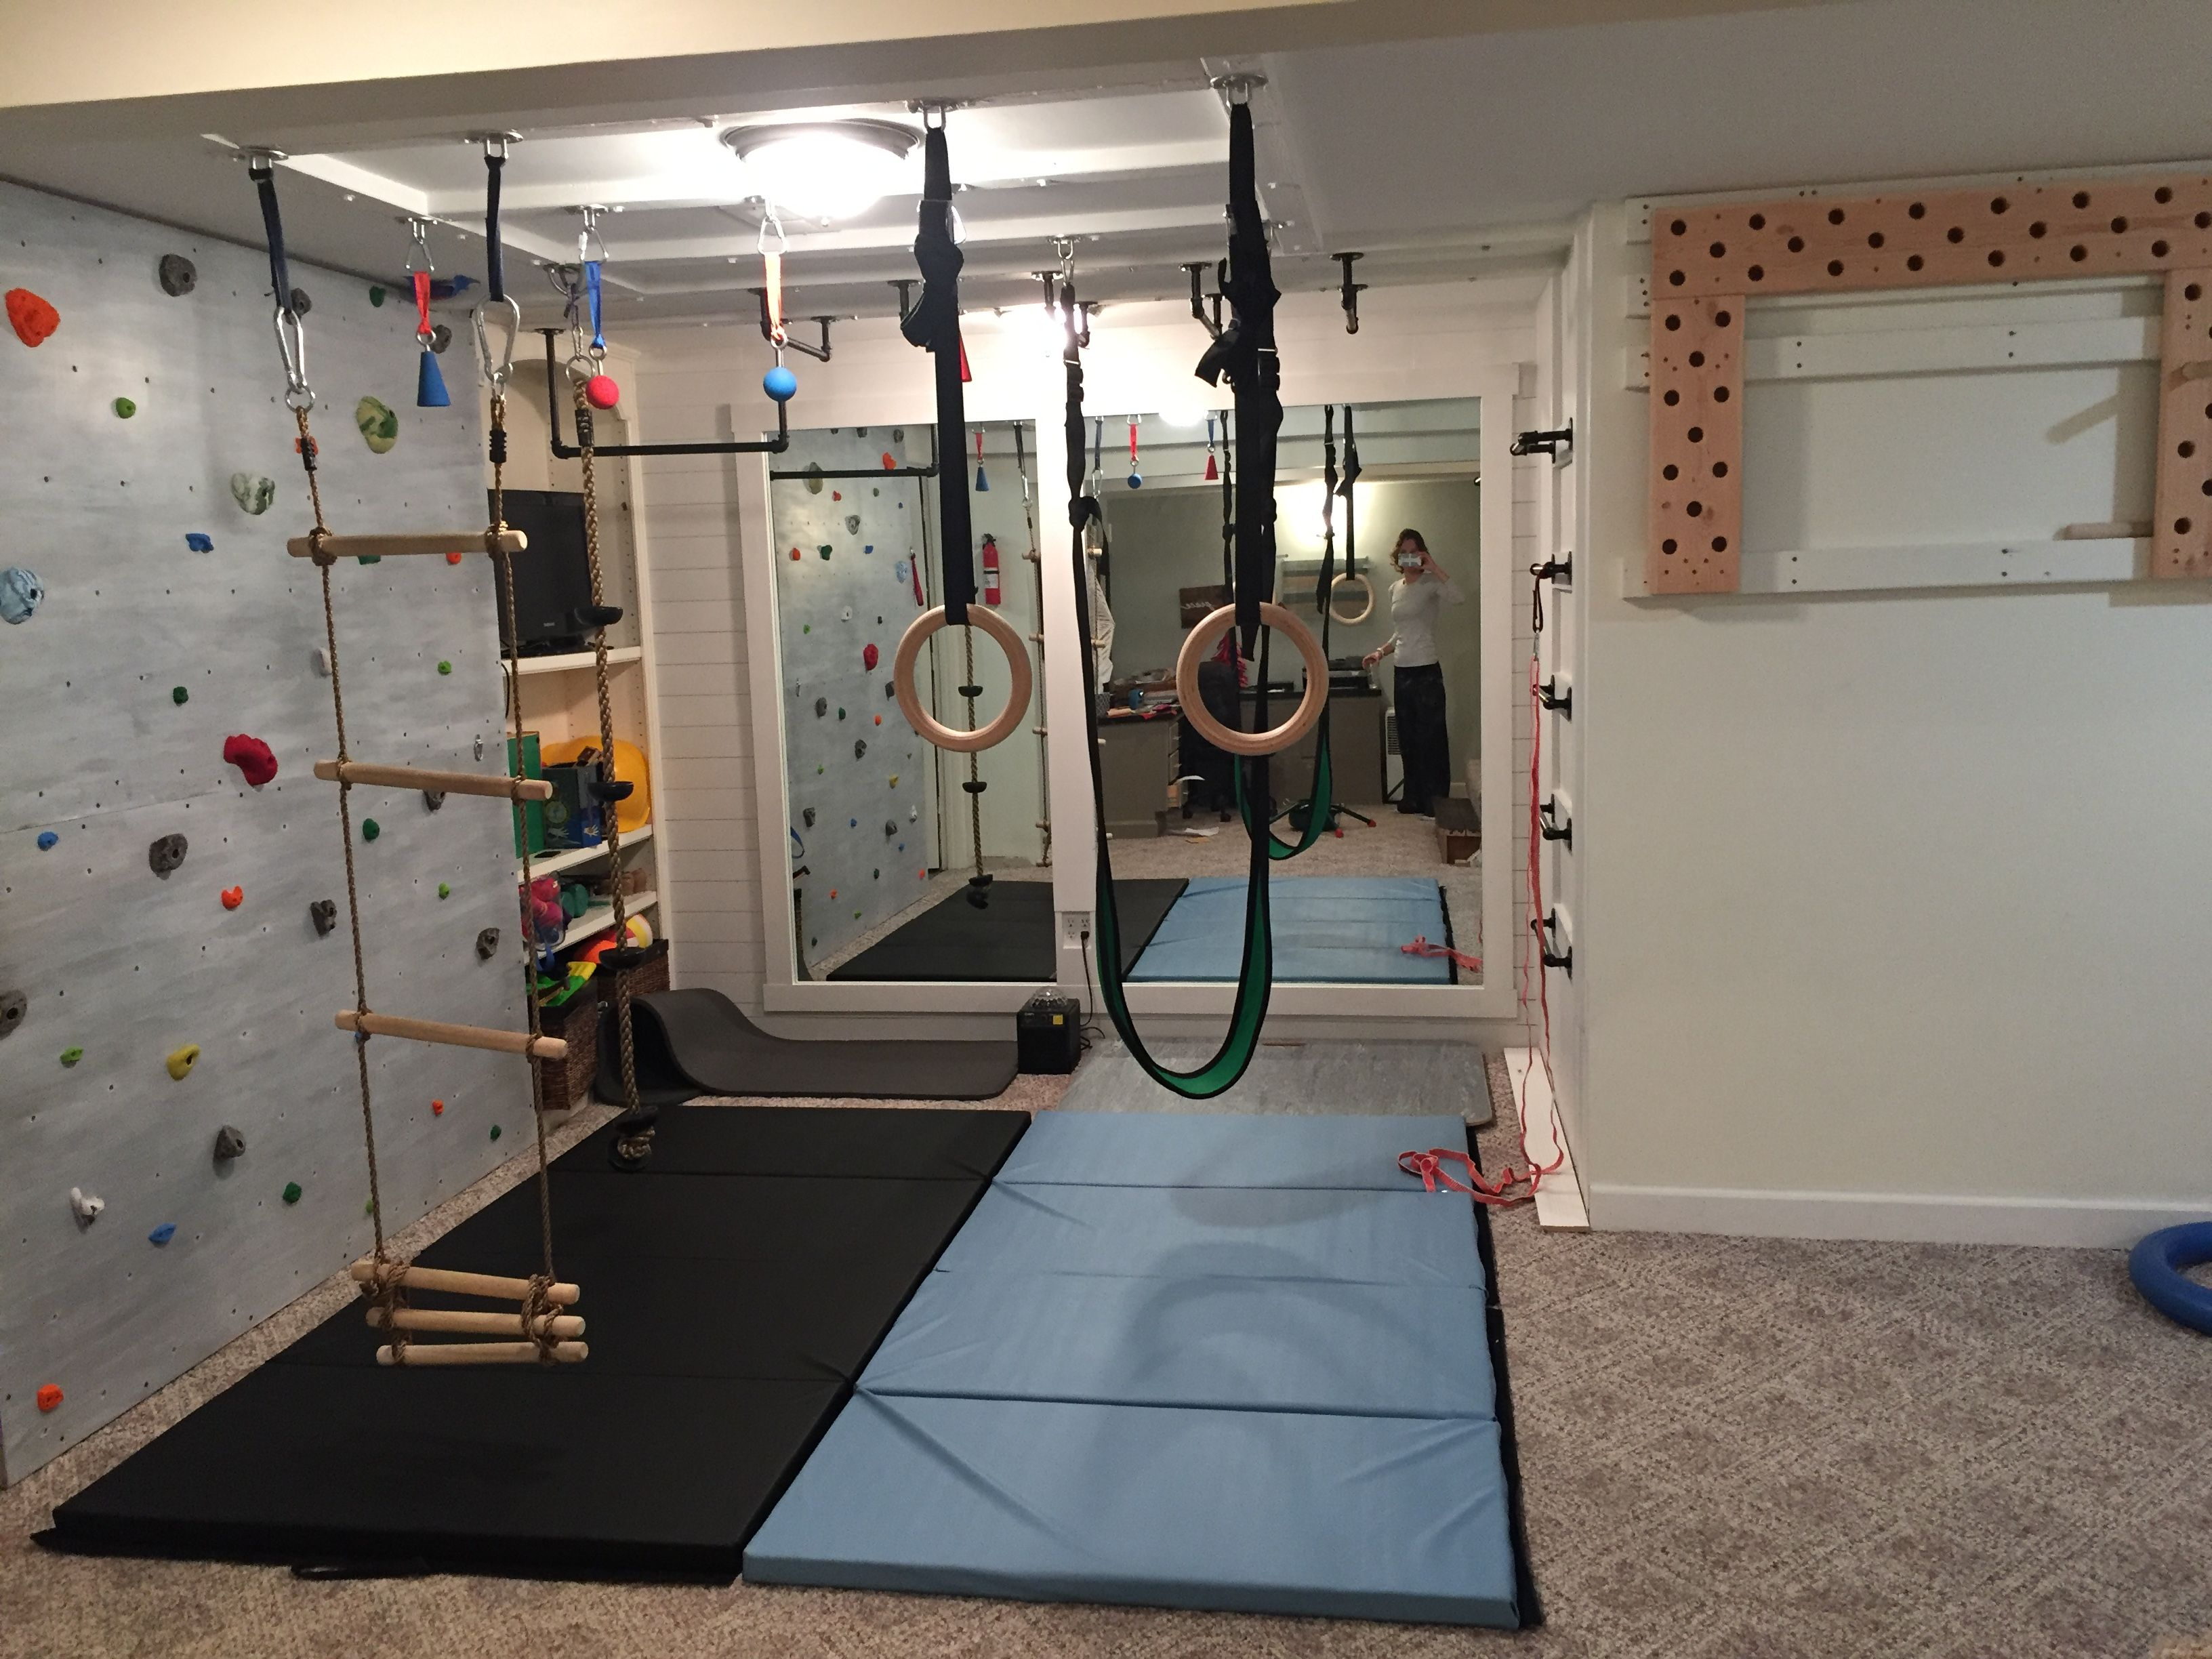 Indoor Basement Playground Ninja Warrior Gym Climbing Wall Pegboard Climber Swing Gymnastic Rings Chin Up Bar